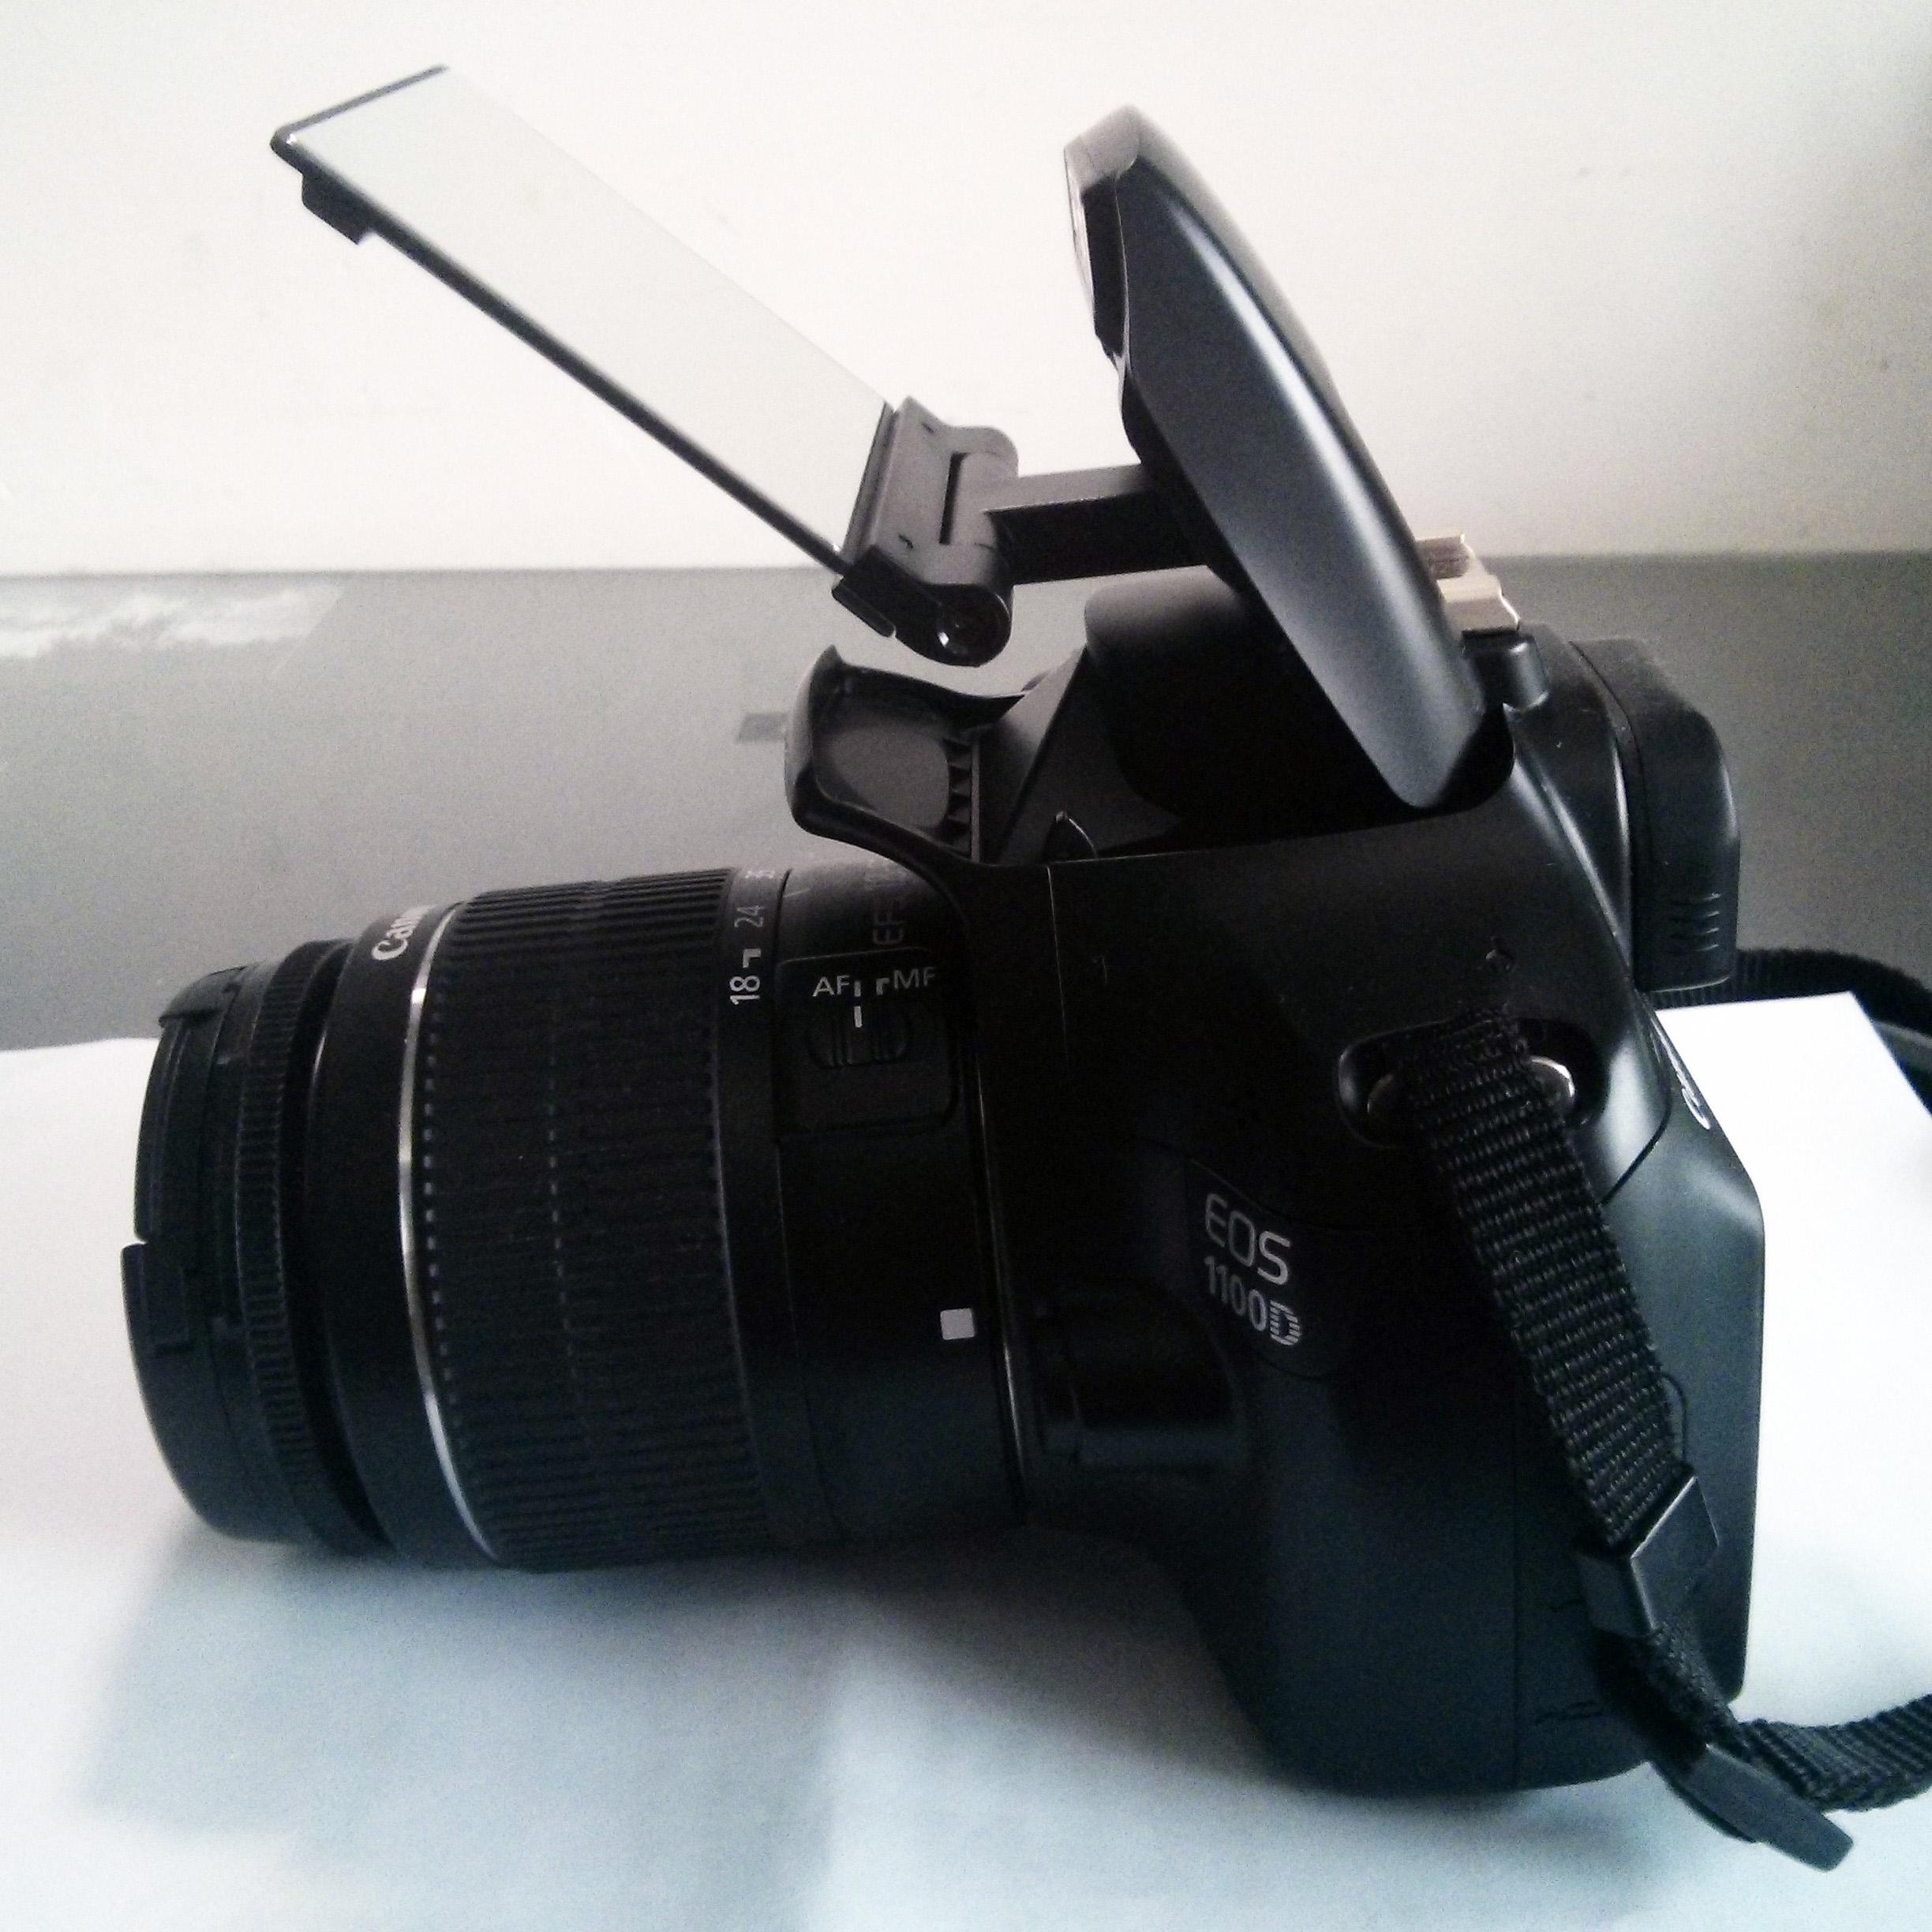 Picture of Flash Diffuser/bouncer LEGO Mount Hack